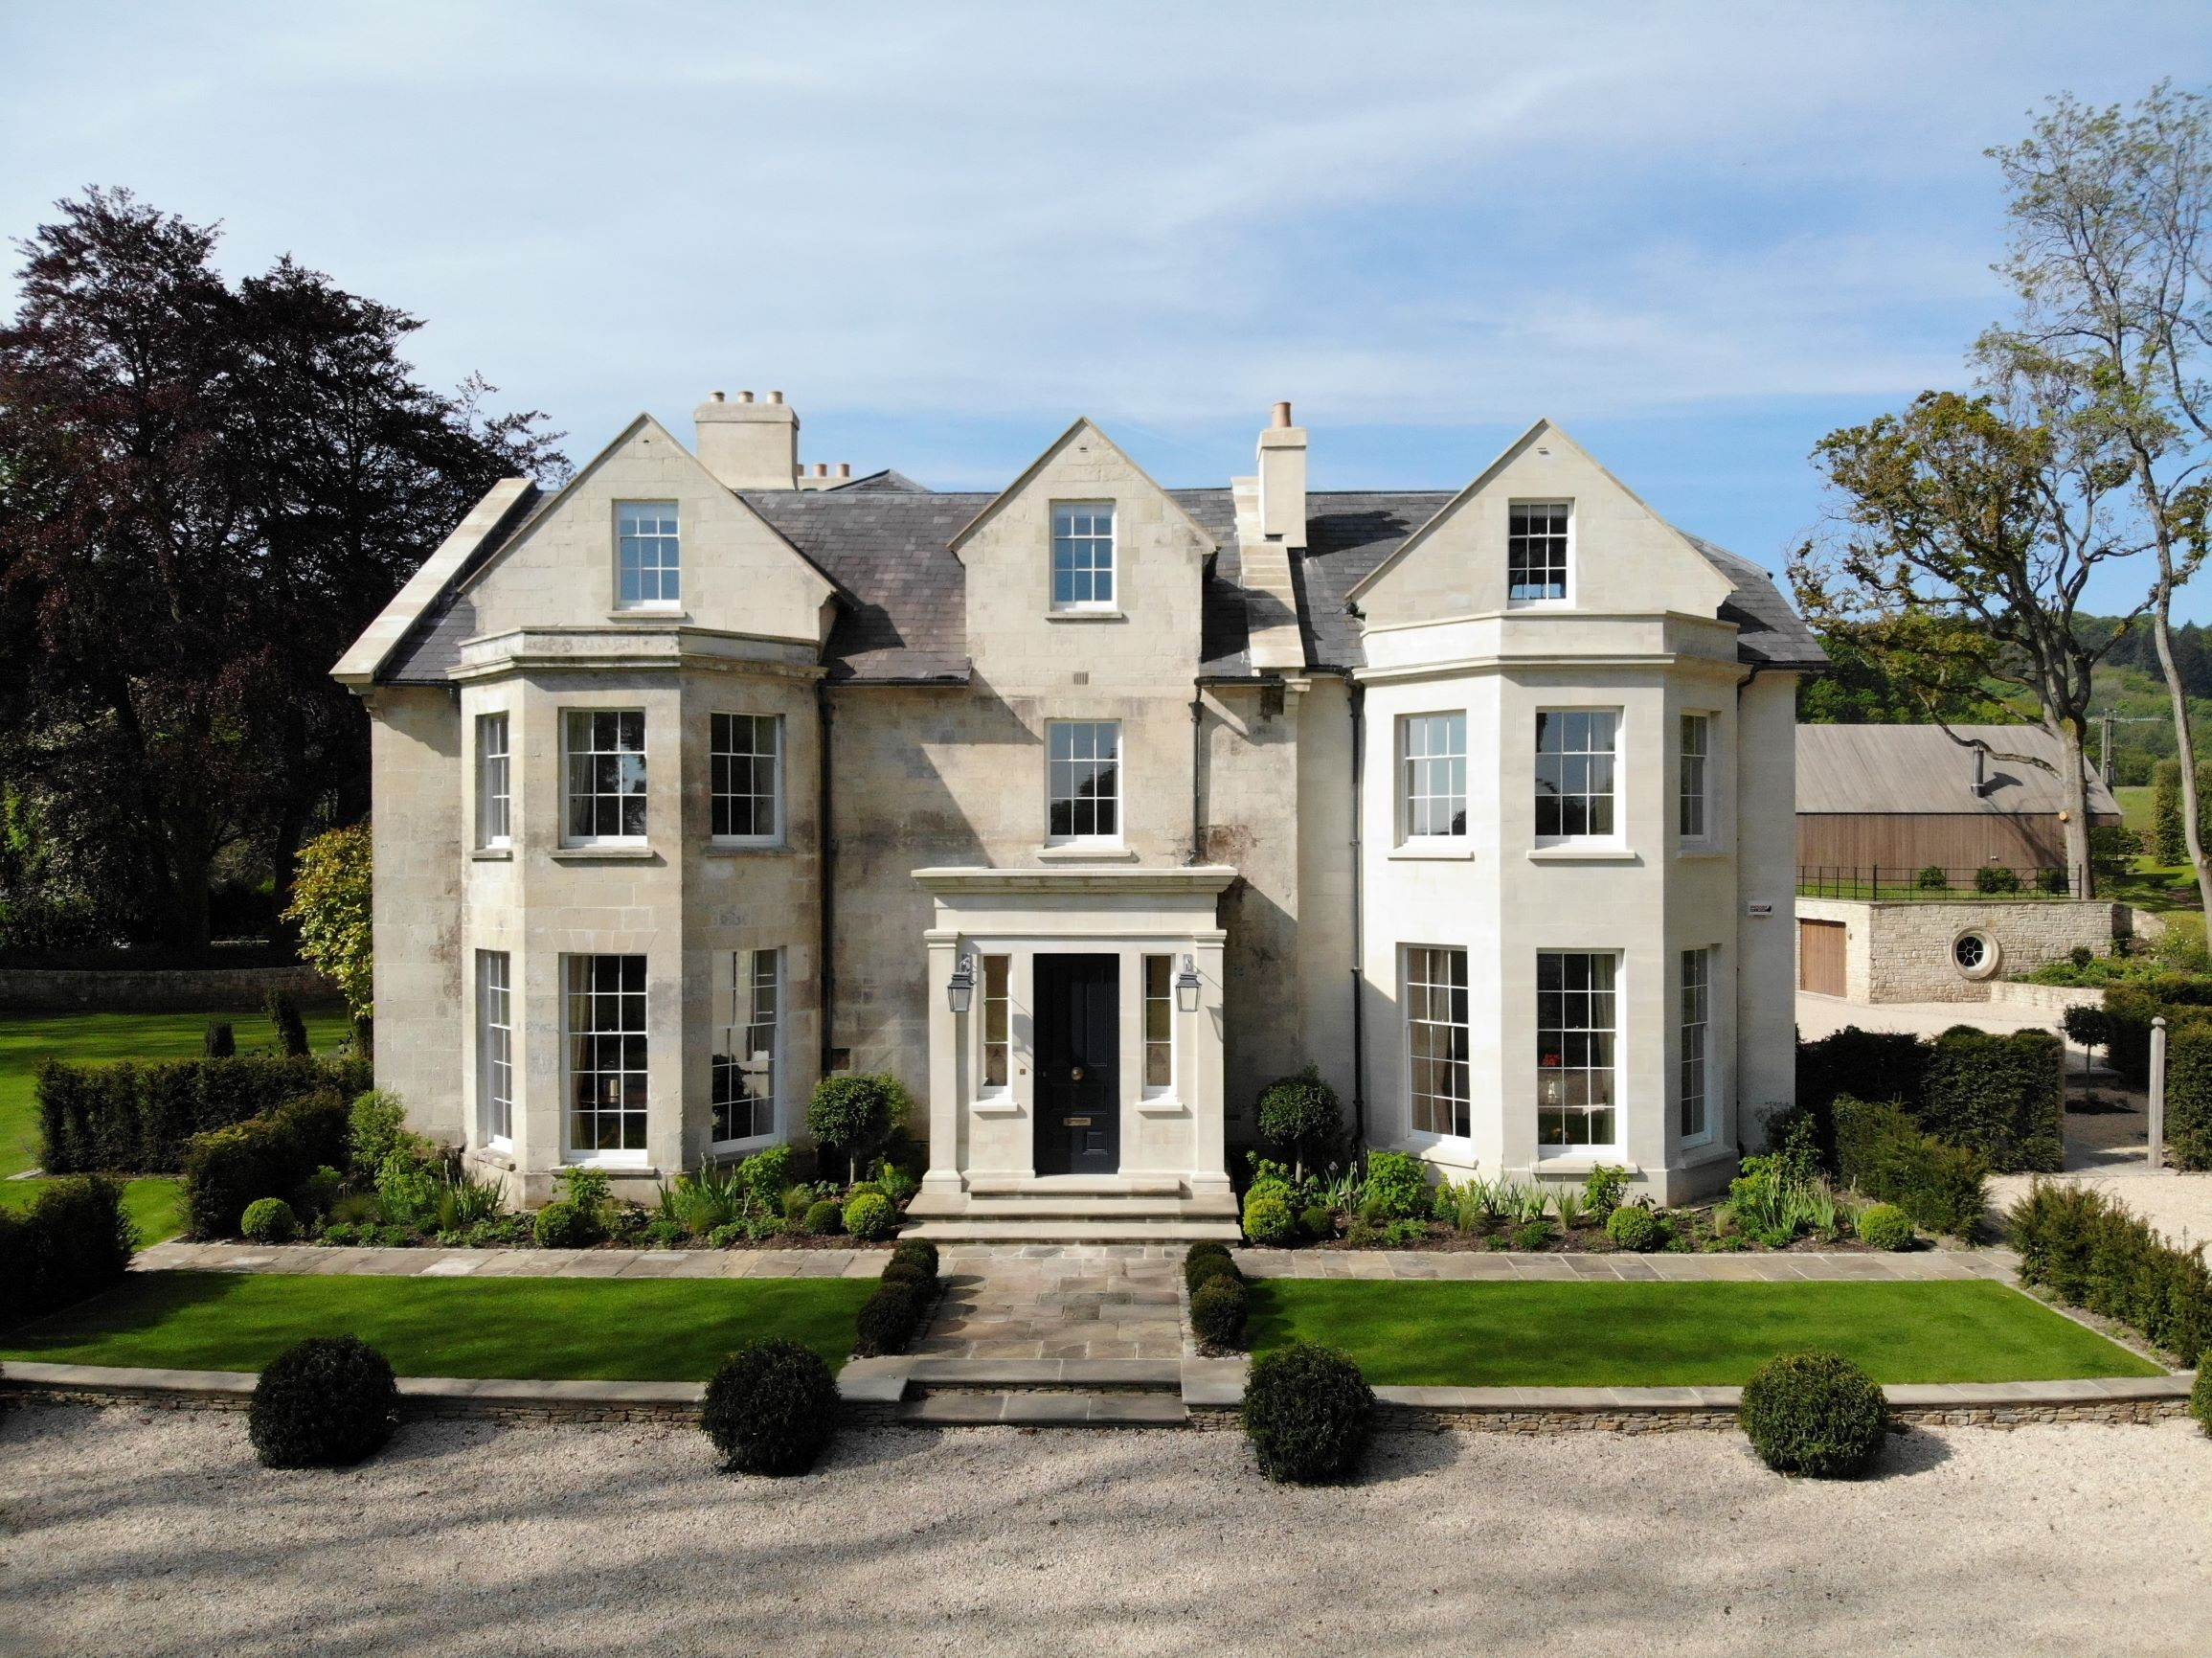 The Old Rectory by Wiltshire architecture firm, Richmond Bell Architects Salisbury